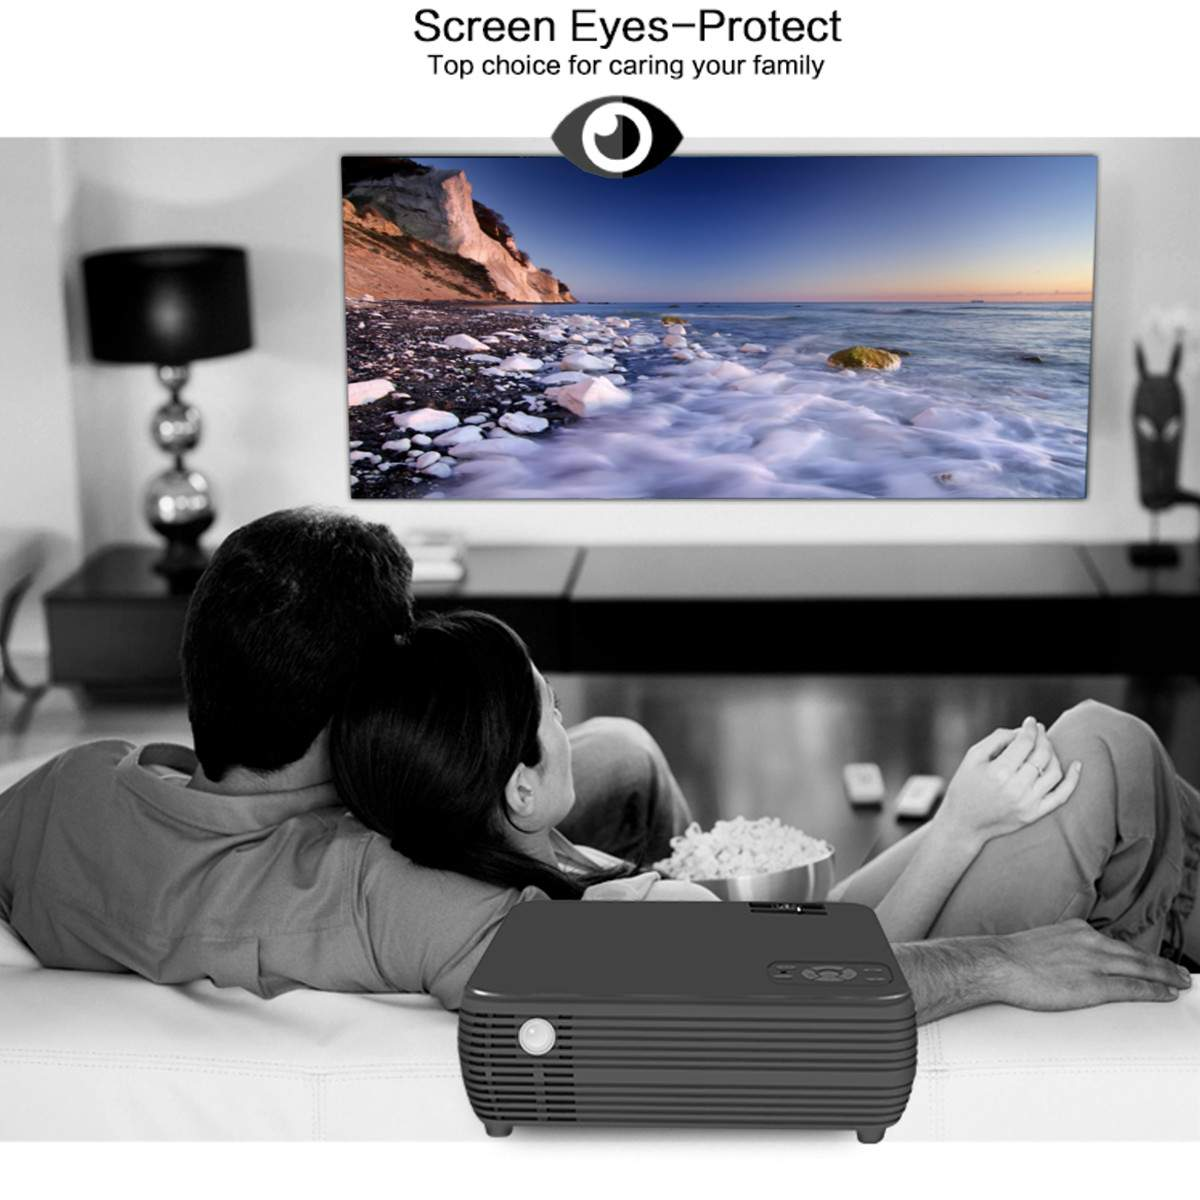 Monitor - TheaterMax™ X5 LCD Projector 7000 Lumens Support 1080P HD Multimedia Home Cinema Smart Home Theater